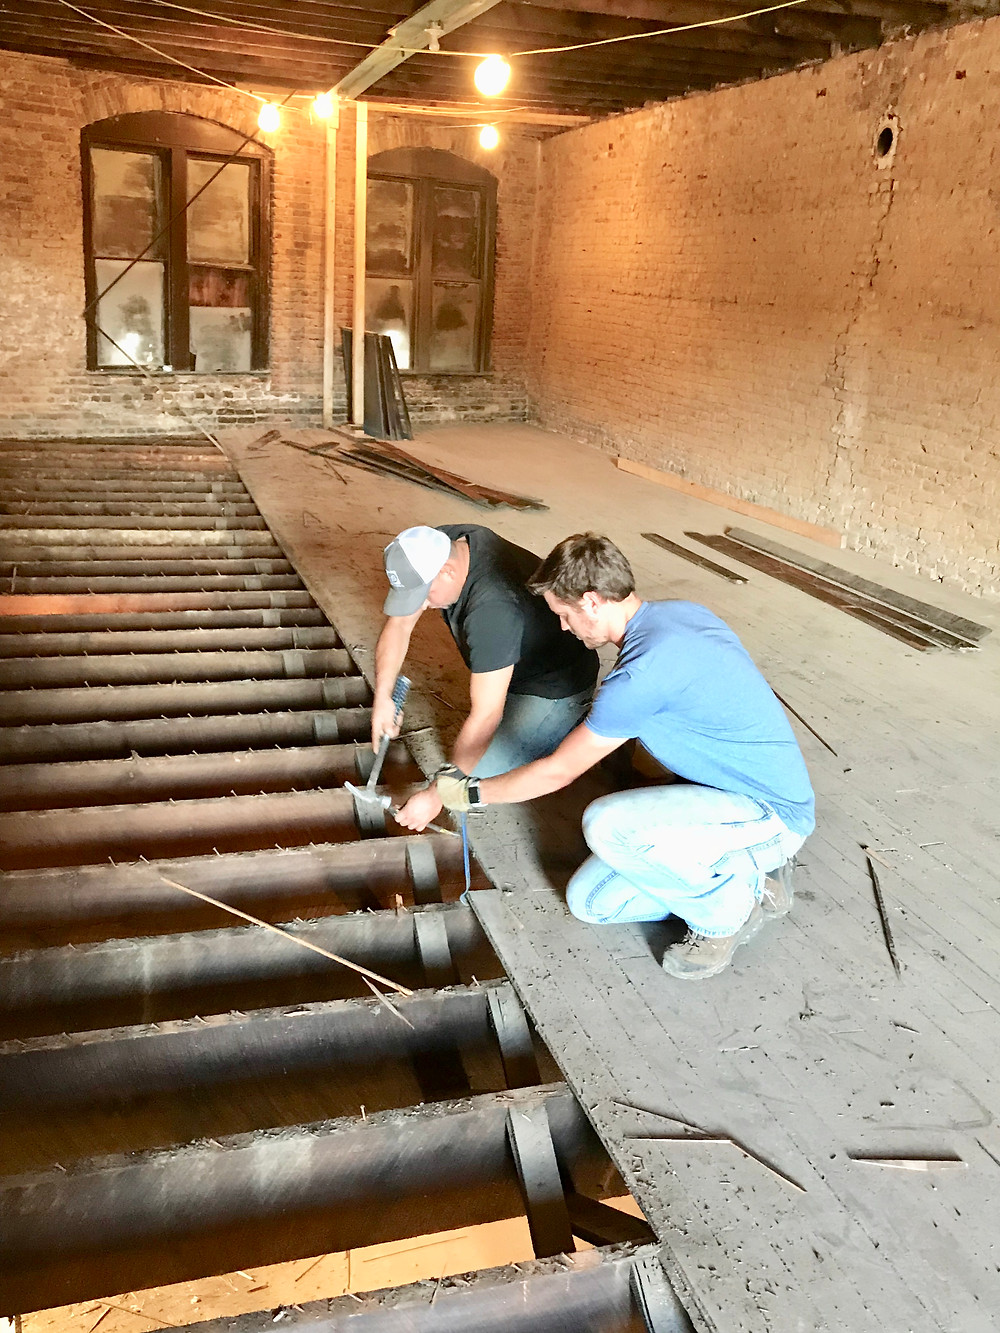 Sam Martin and Josue Rivas try to preserve the floors at the House of Vaccums, East Florence, AL Sweetwater District